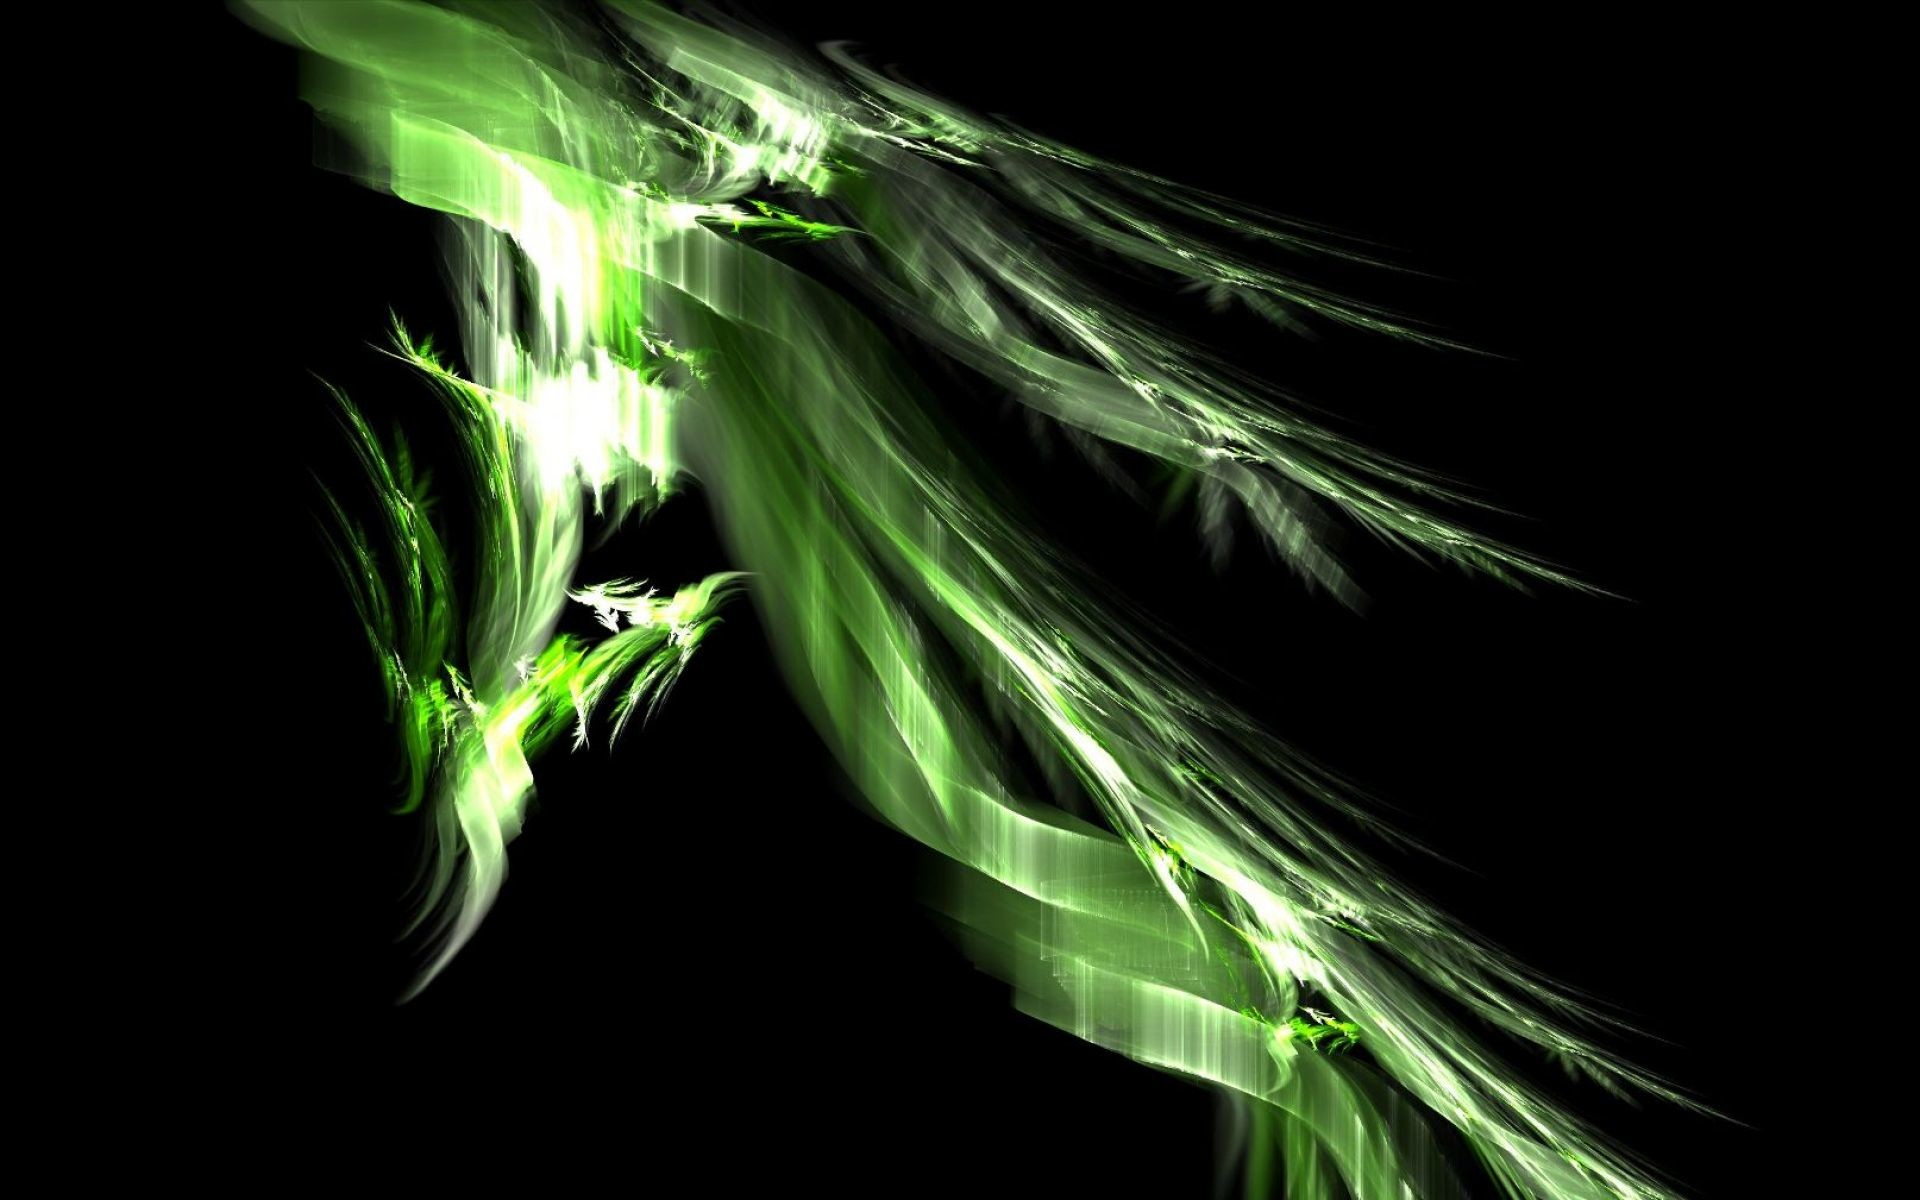 Moving dragon wallpapers for desktop 78 images - Dragon wallpaper 3d ...